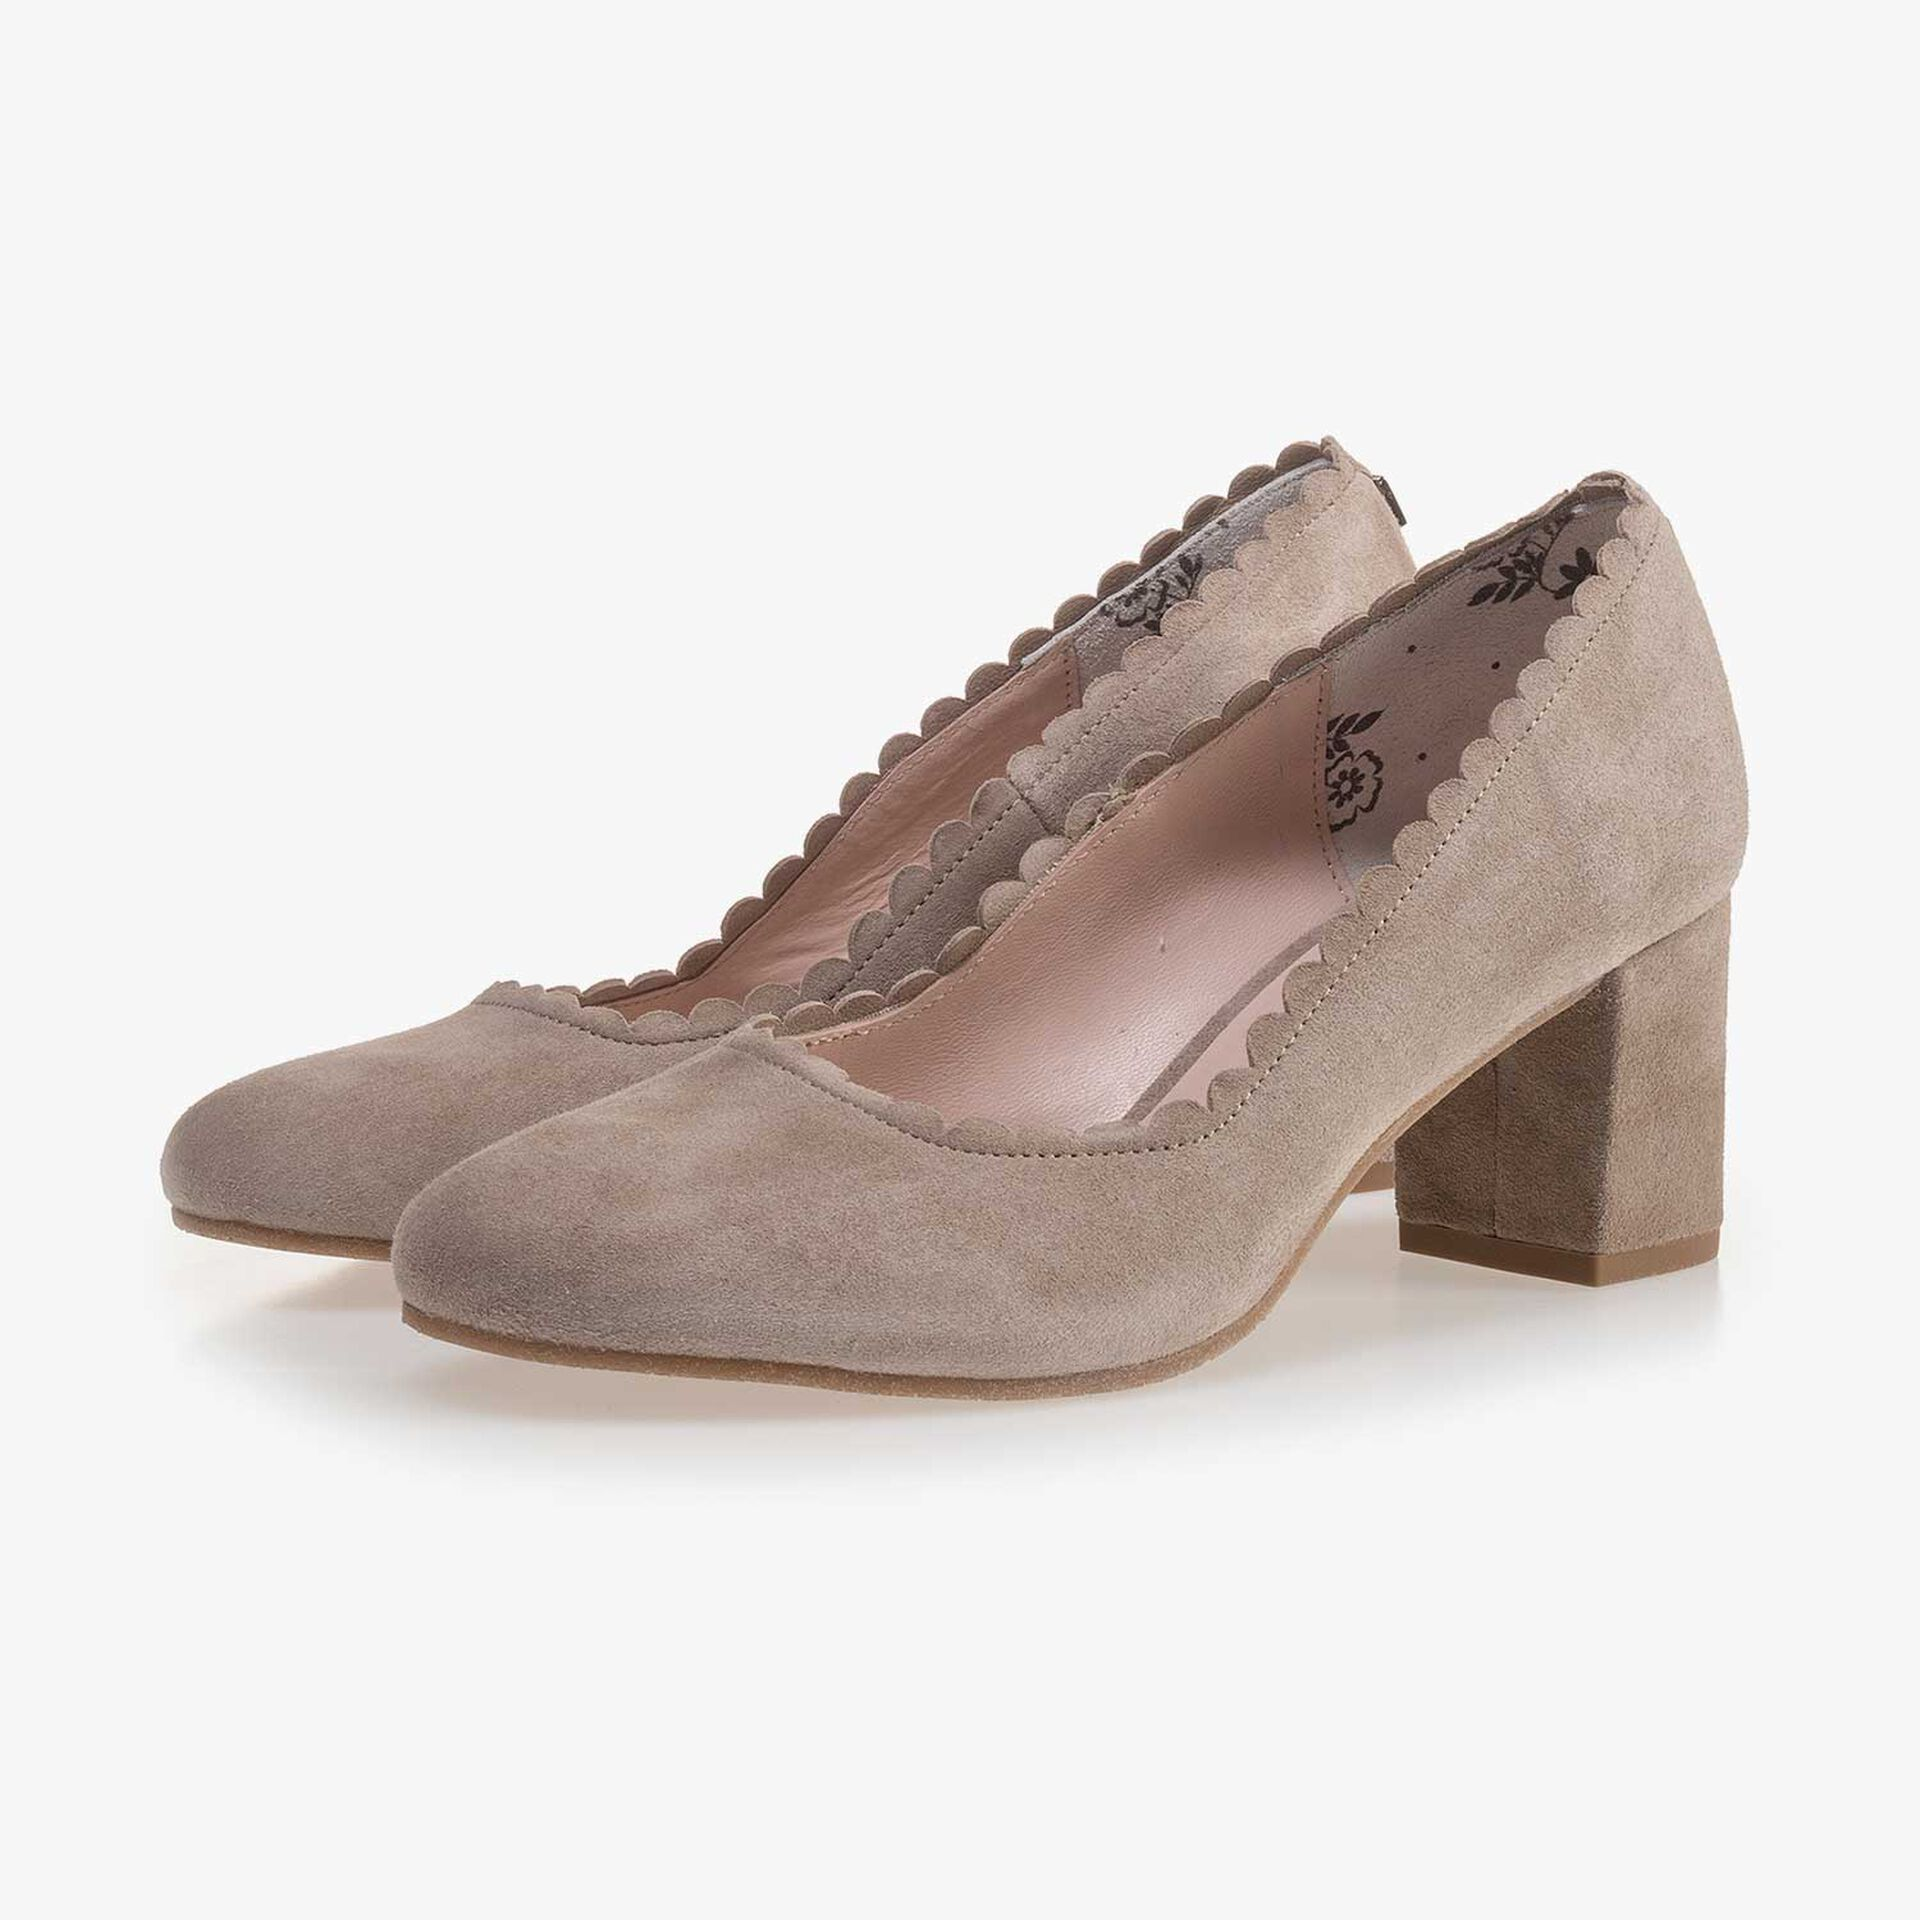 Taupe-coloured suede leather pumps